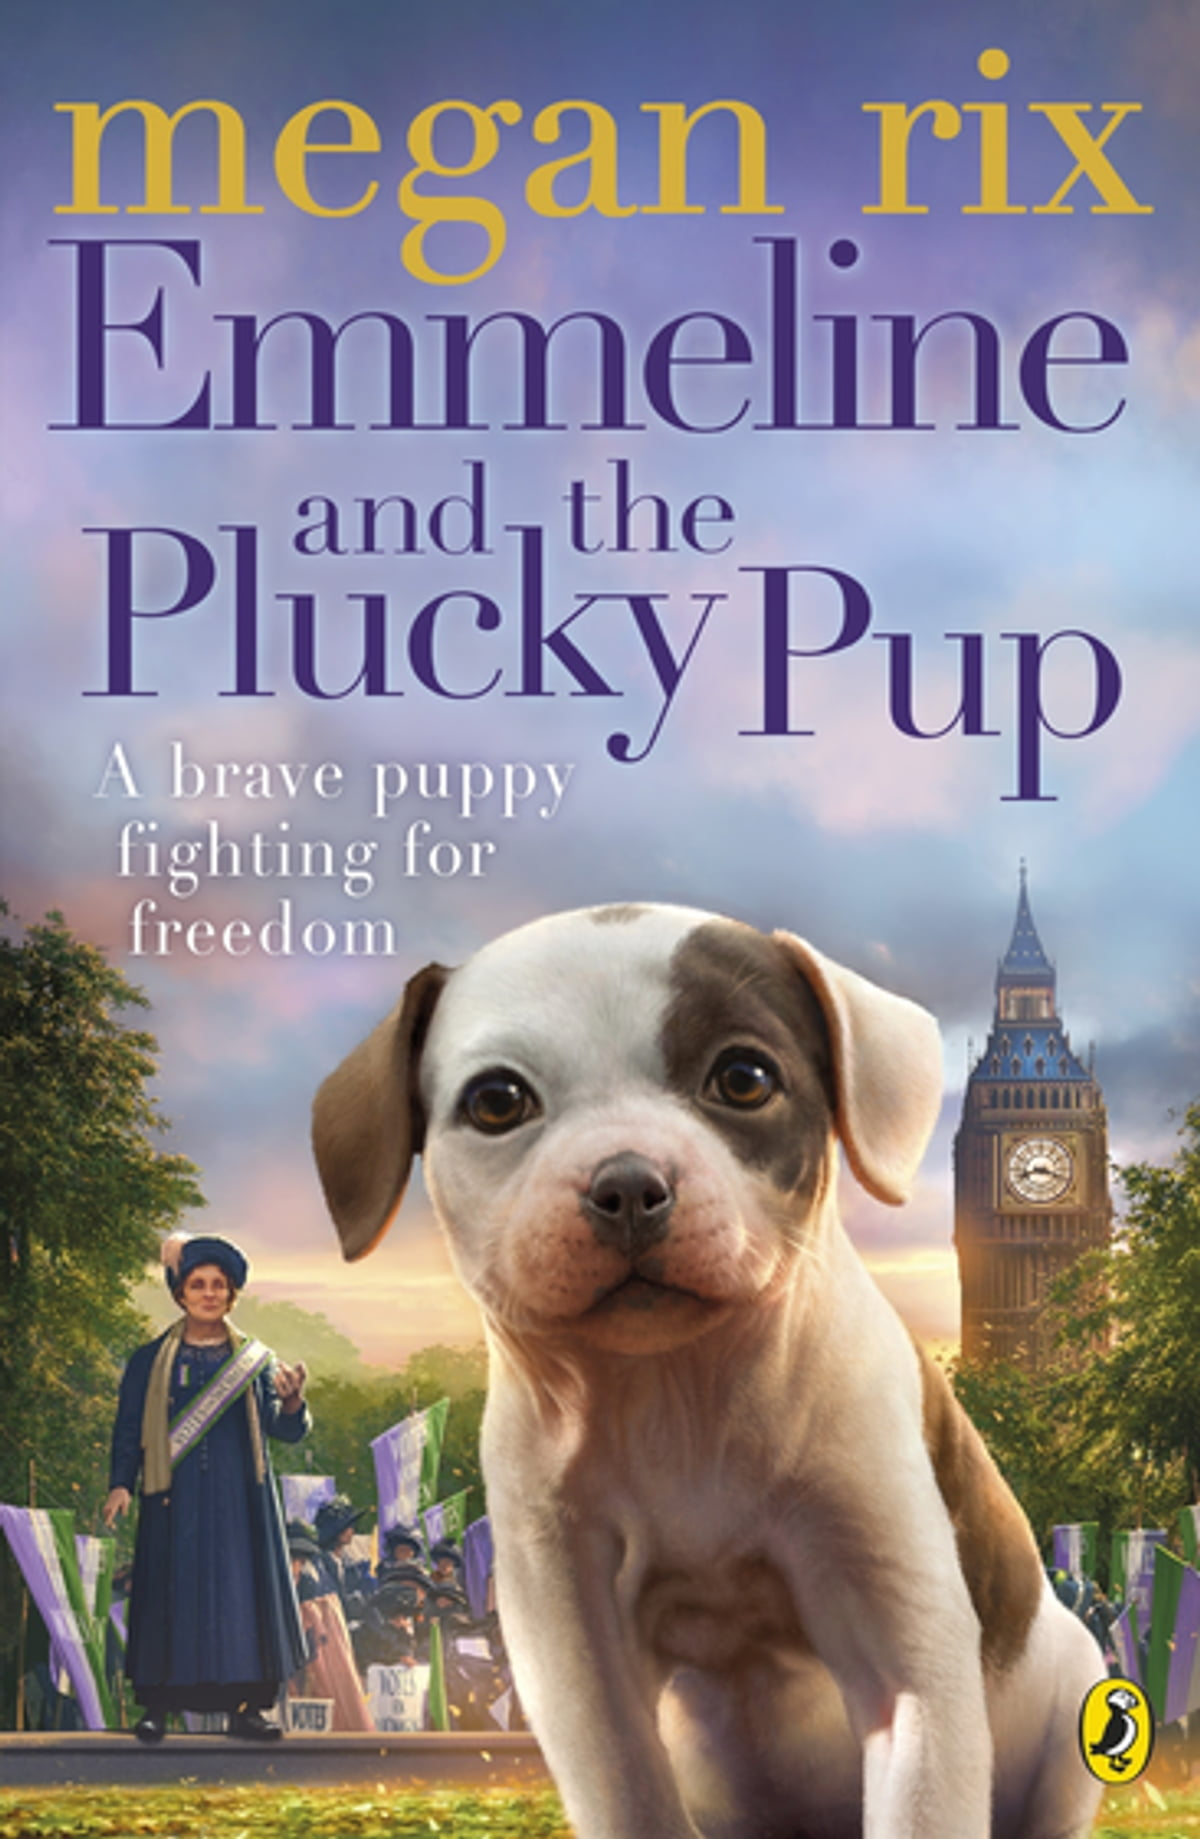 emmeline and the plucky pup megan rix 9780141385747 楽天kobo